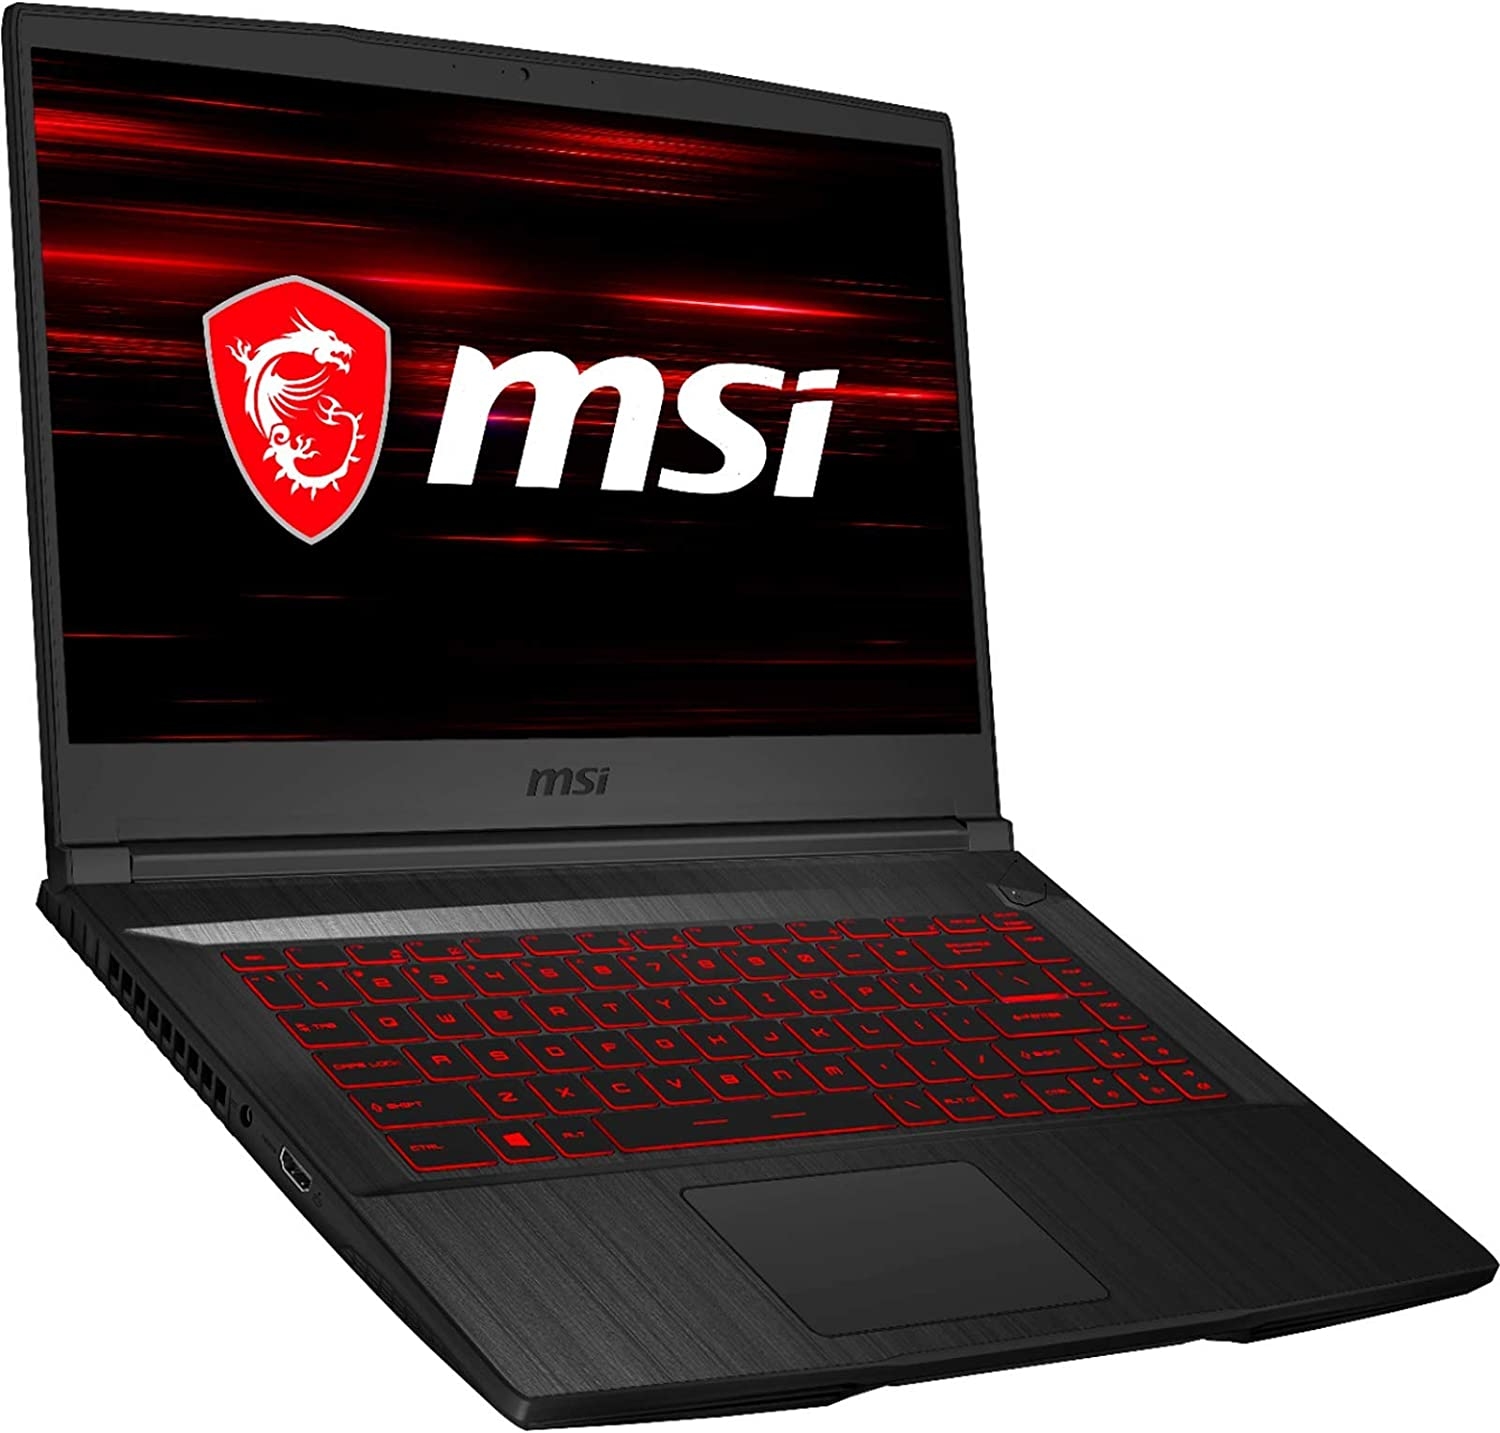 71f6TB4iVPL. AC SL1500 10 Best Gaming Laptops for Rust in 2021 Reviews